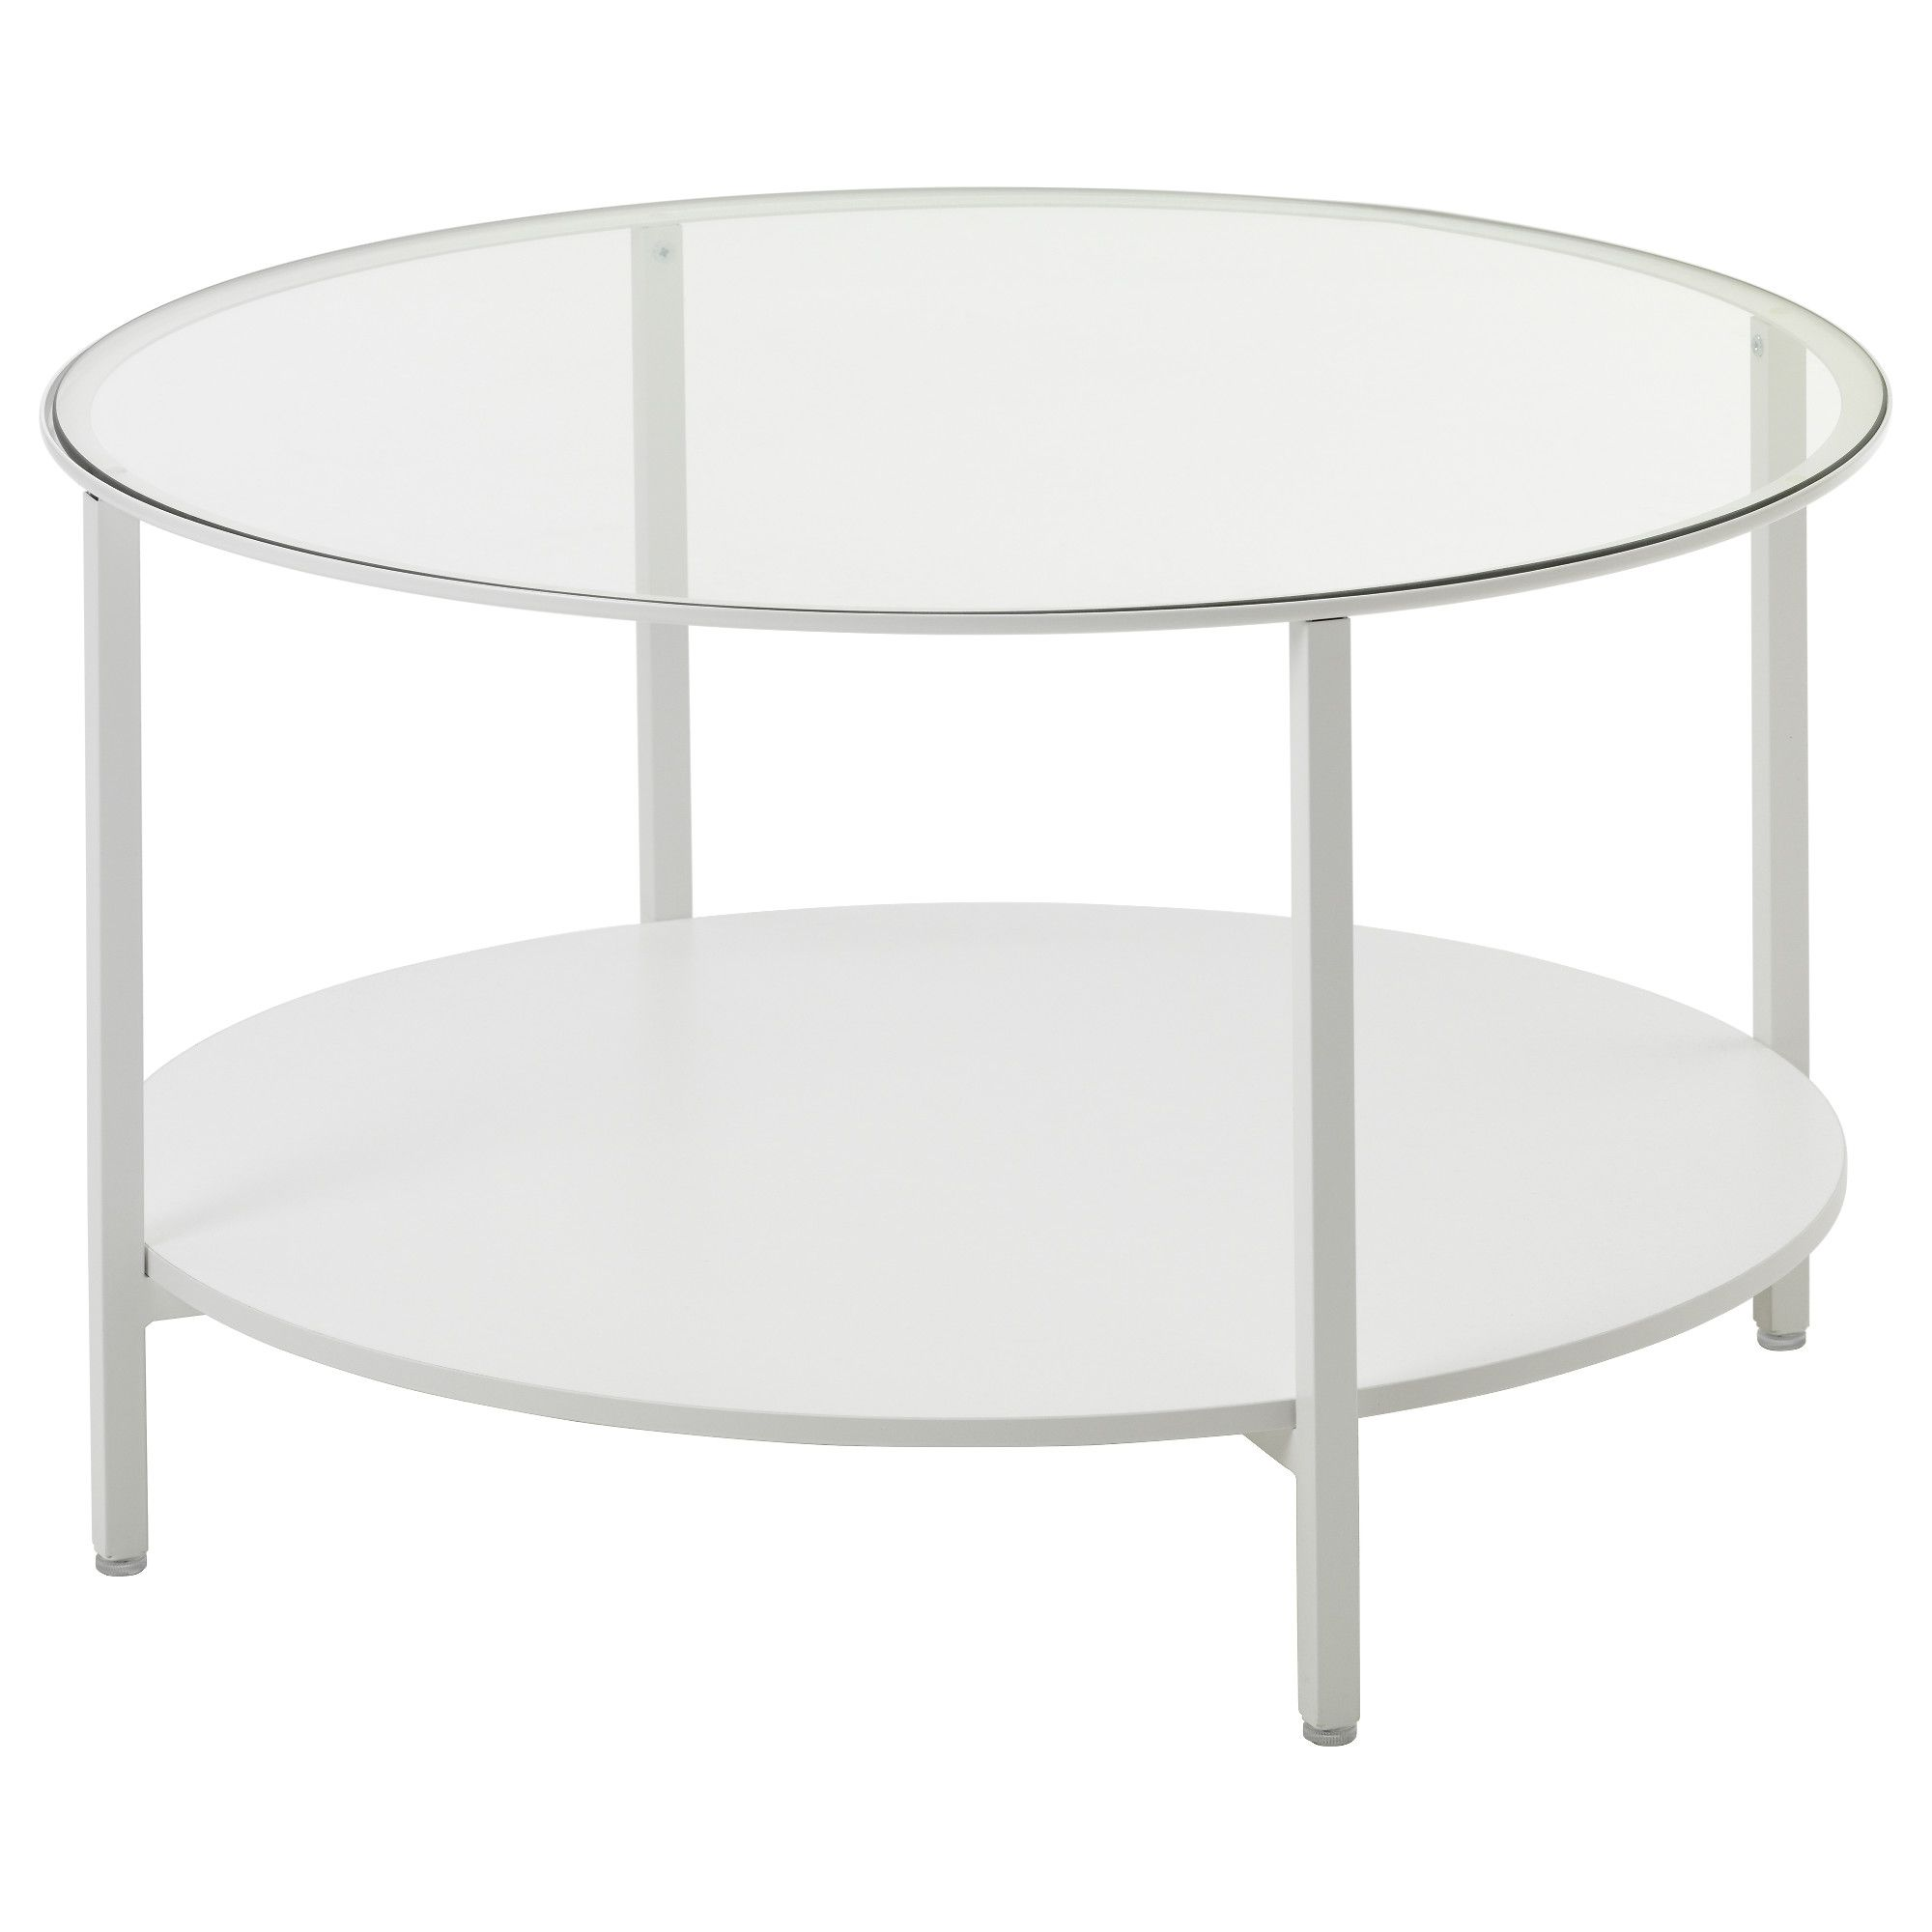 Table Ikea En Verre 9 Go To Ikea Products Designers Buy Again And Again For The Home